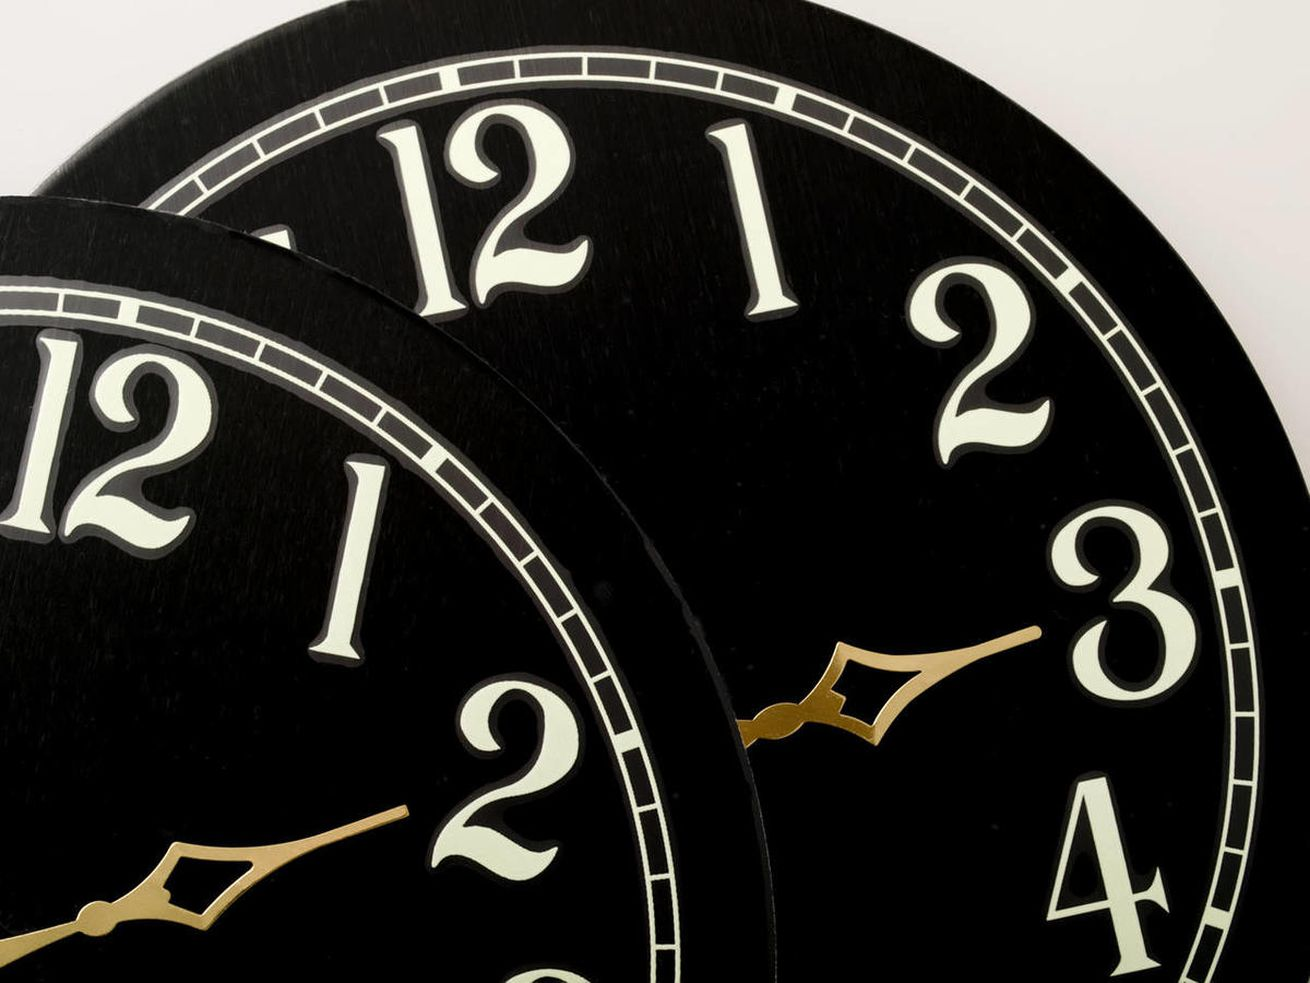 Daylight saving: Will the time changes ever end?